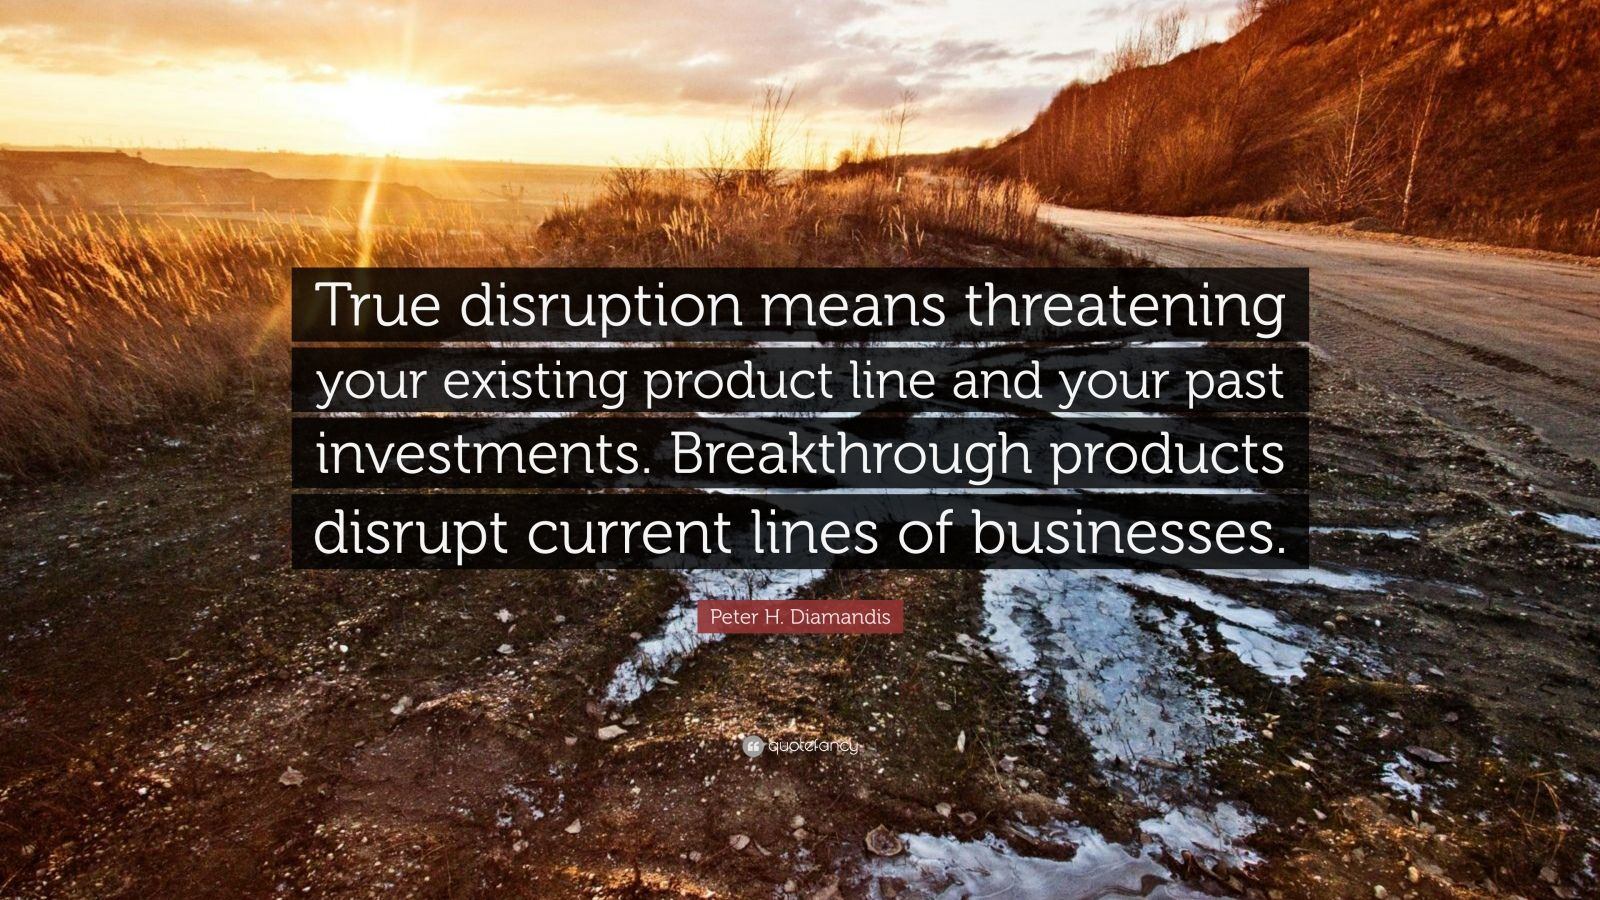 """Peter H. Diamandis Quote: """"True disruption means threatening your existing product line and your past investments. Breakthrough products disrupt current lines of businesses."""""""